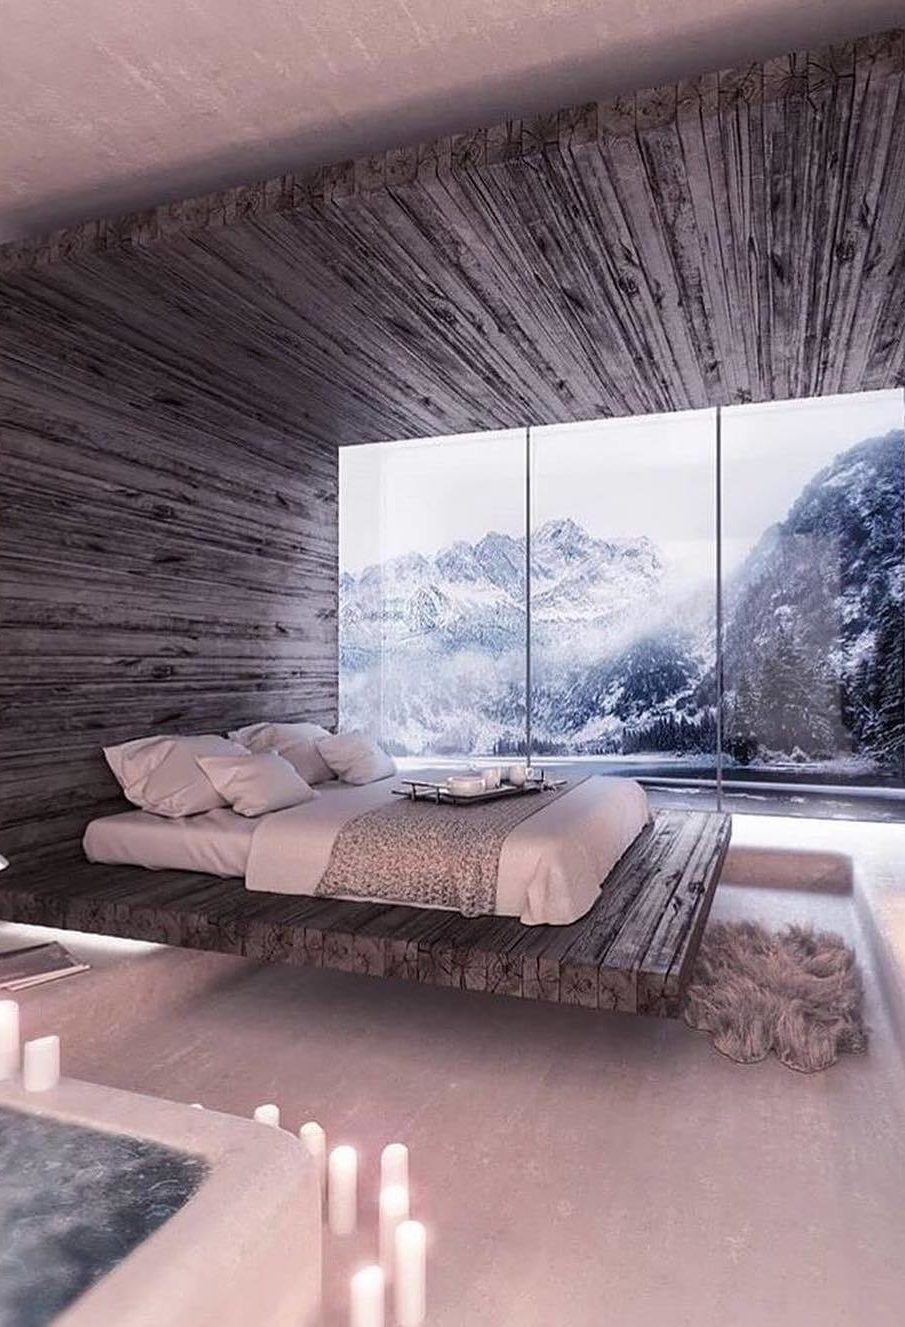 new-33-awesome-bedroom-design-ideas-and-decoration-images-for-2019